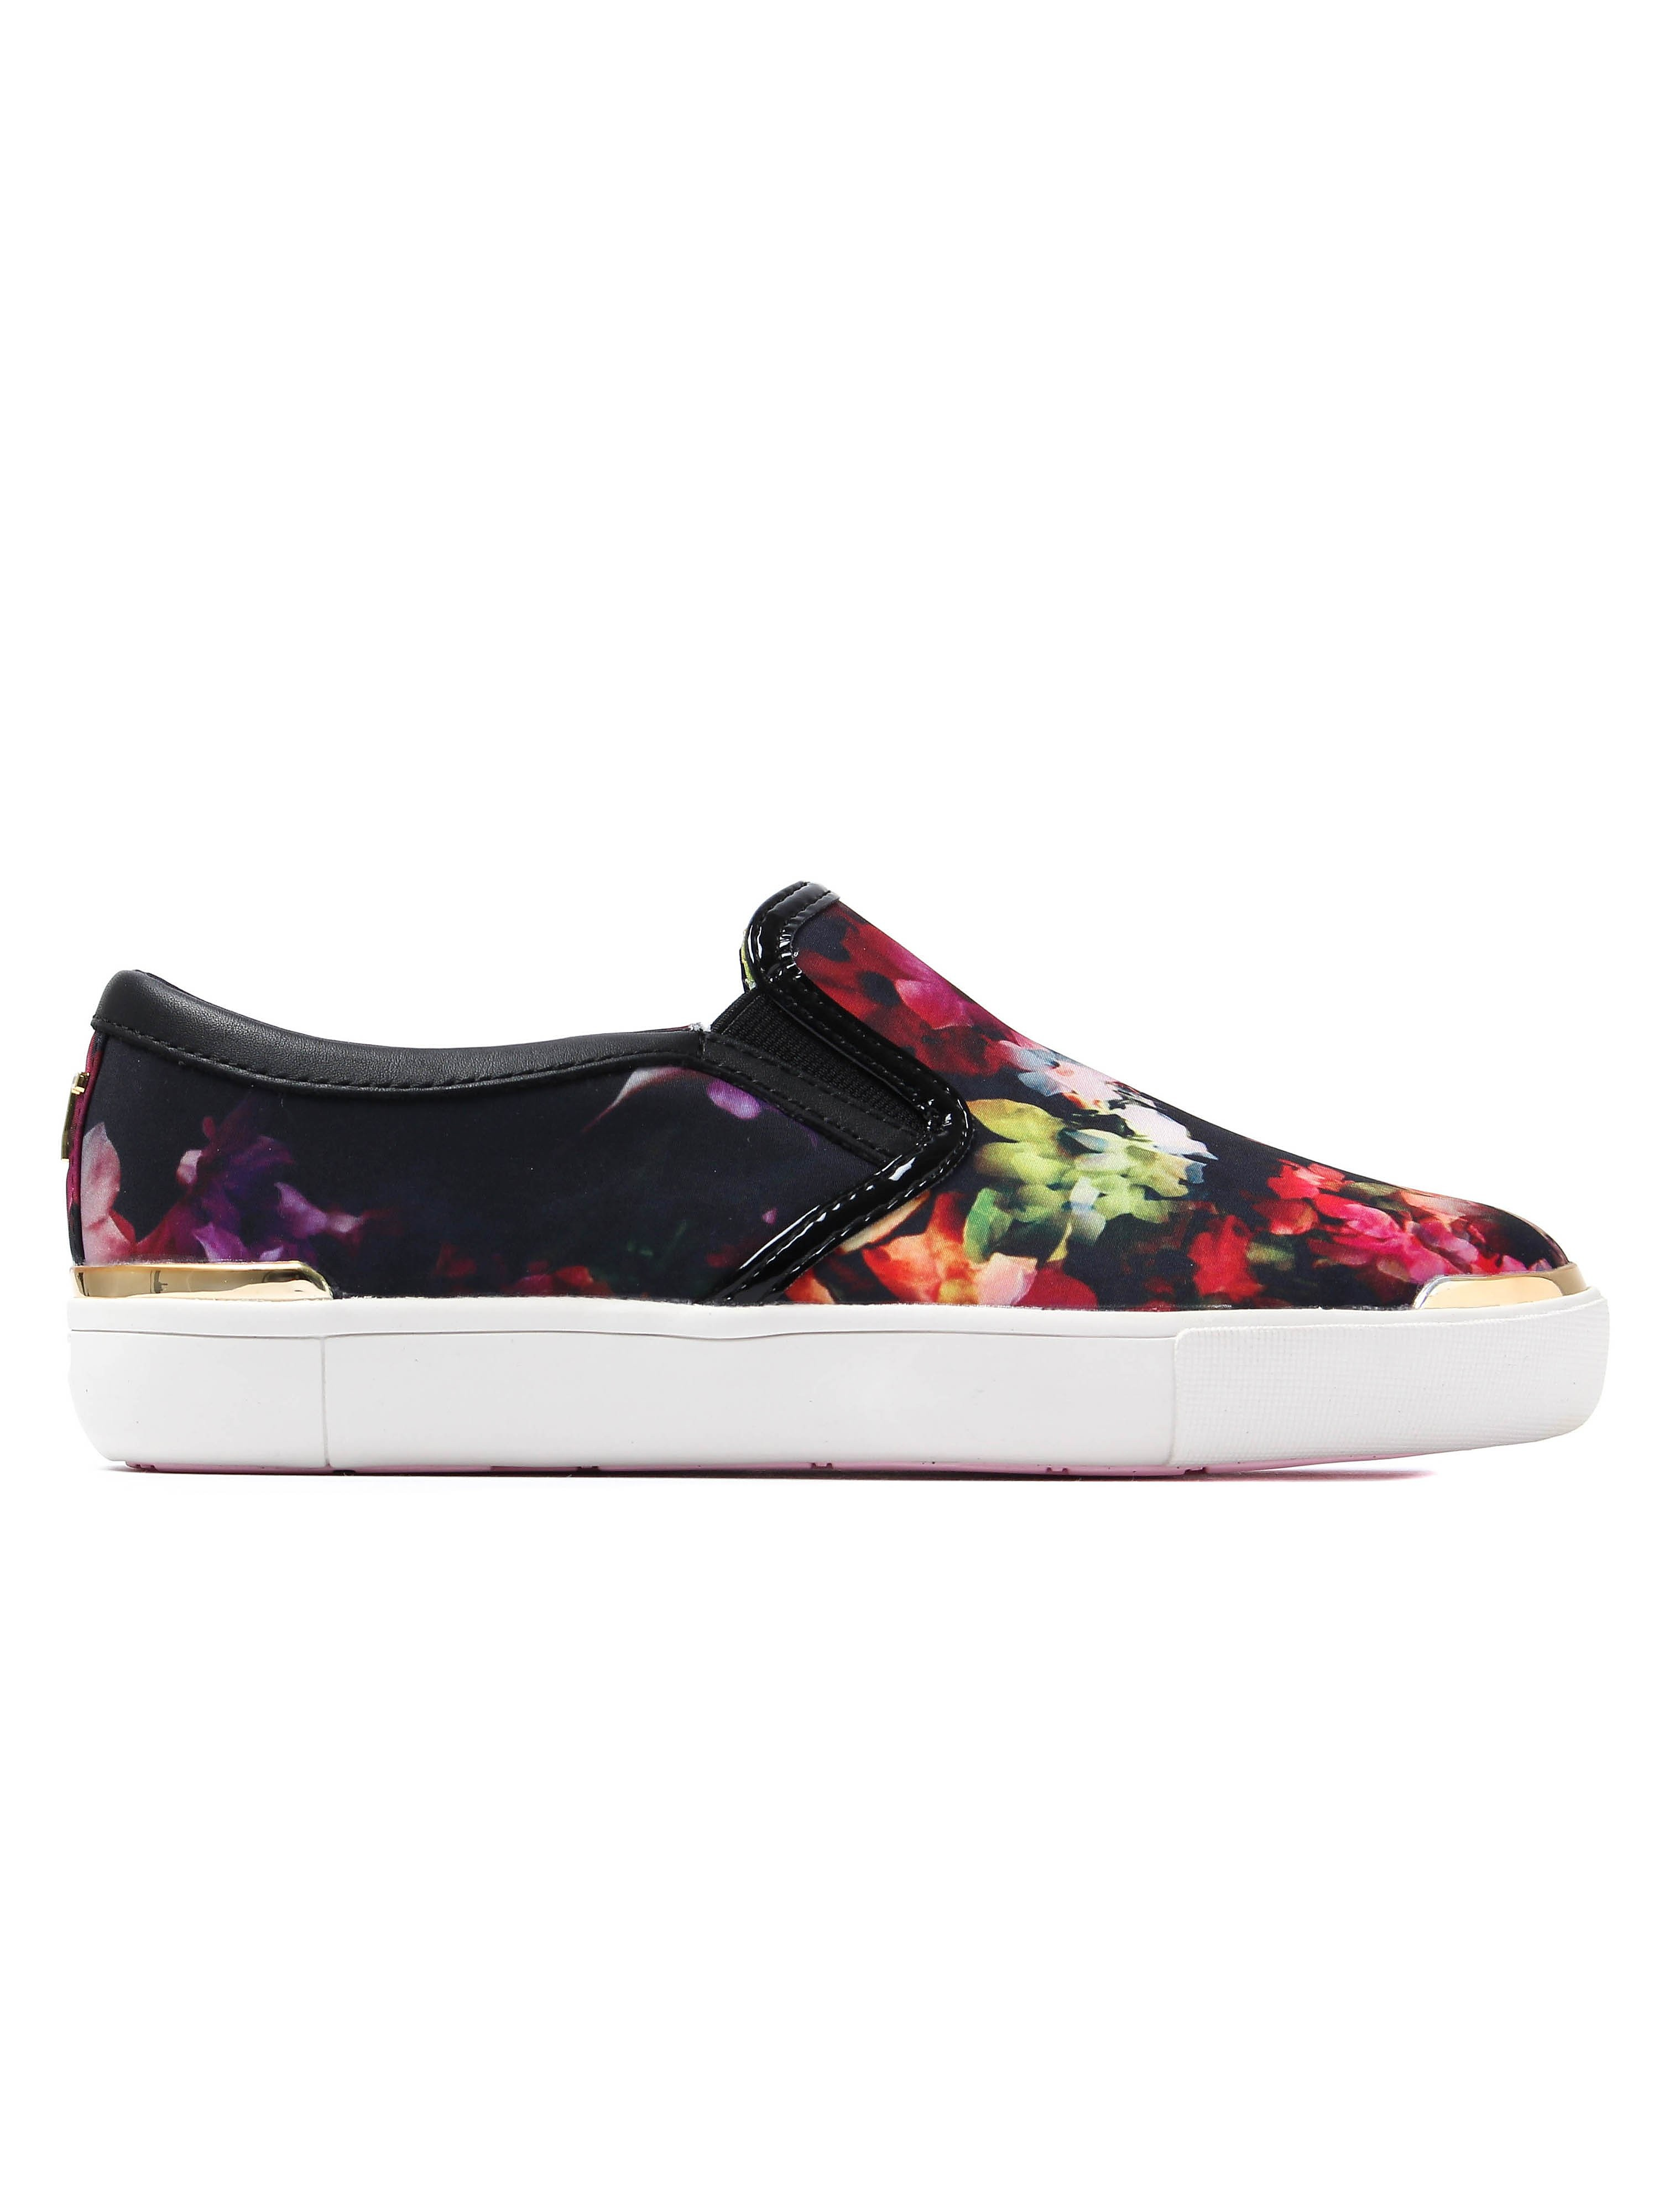 Ted Baker Women's Malbeck Slip-on Trainers - Cascading Floral